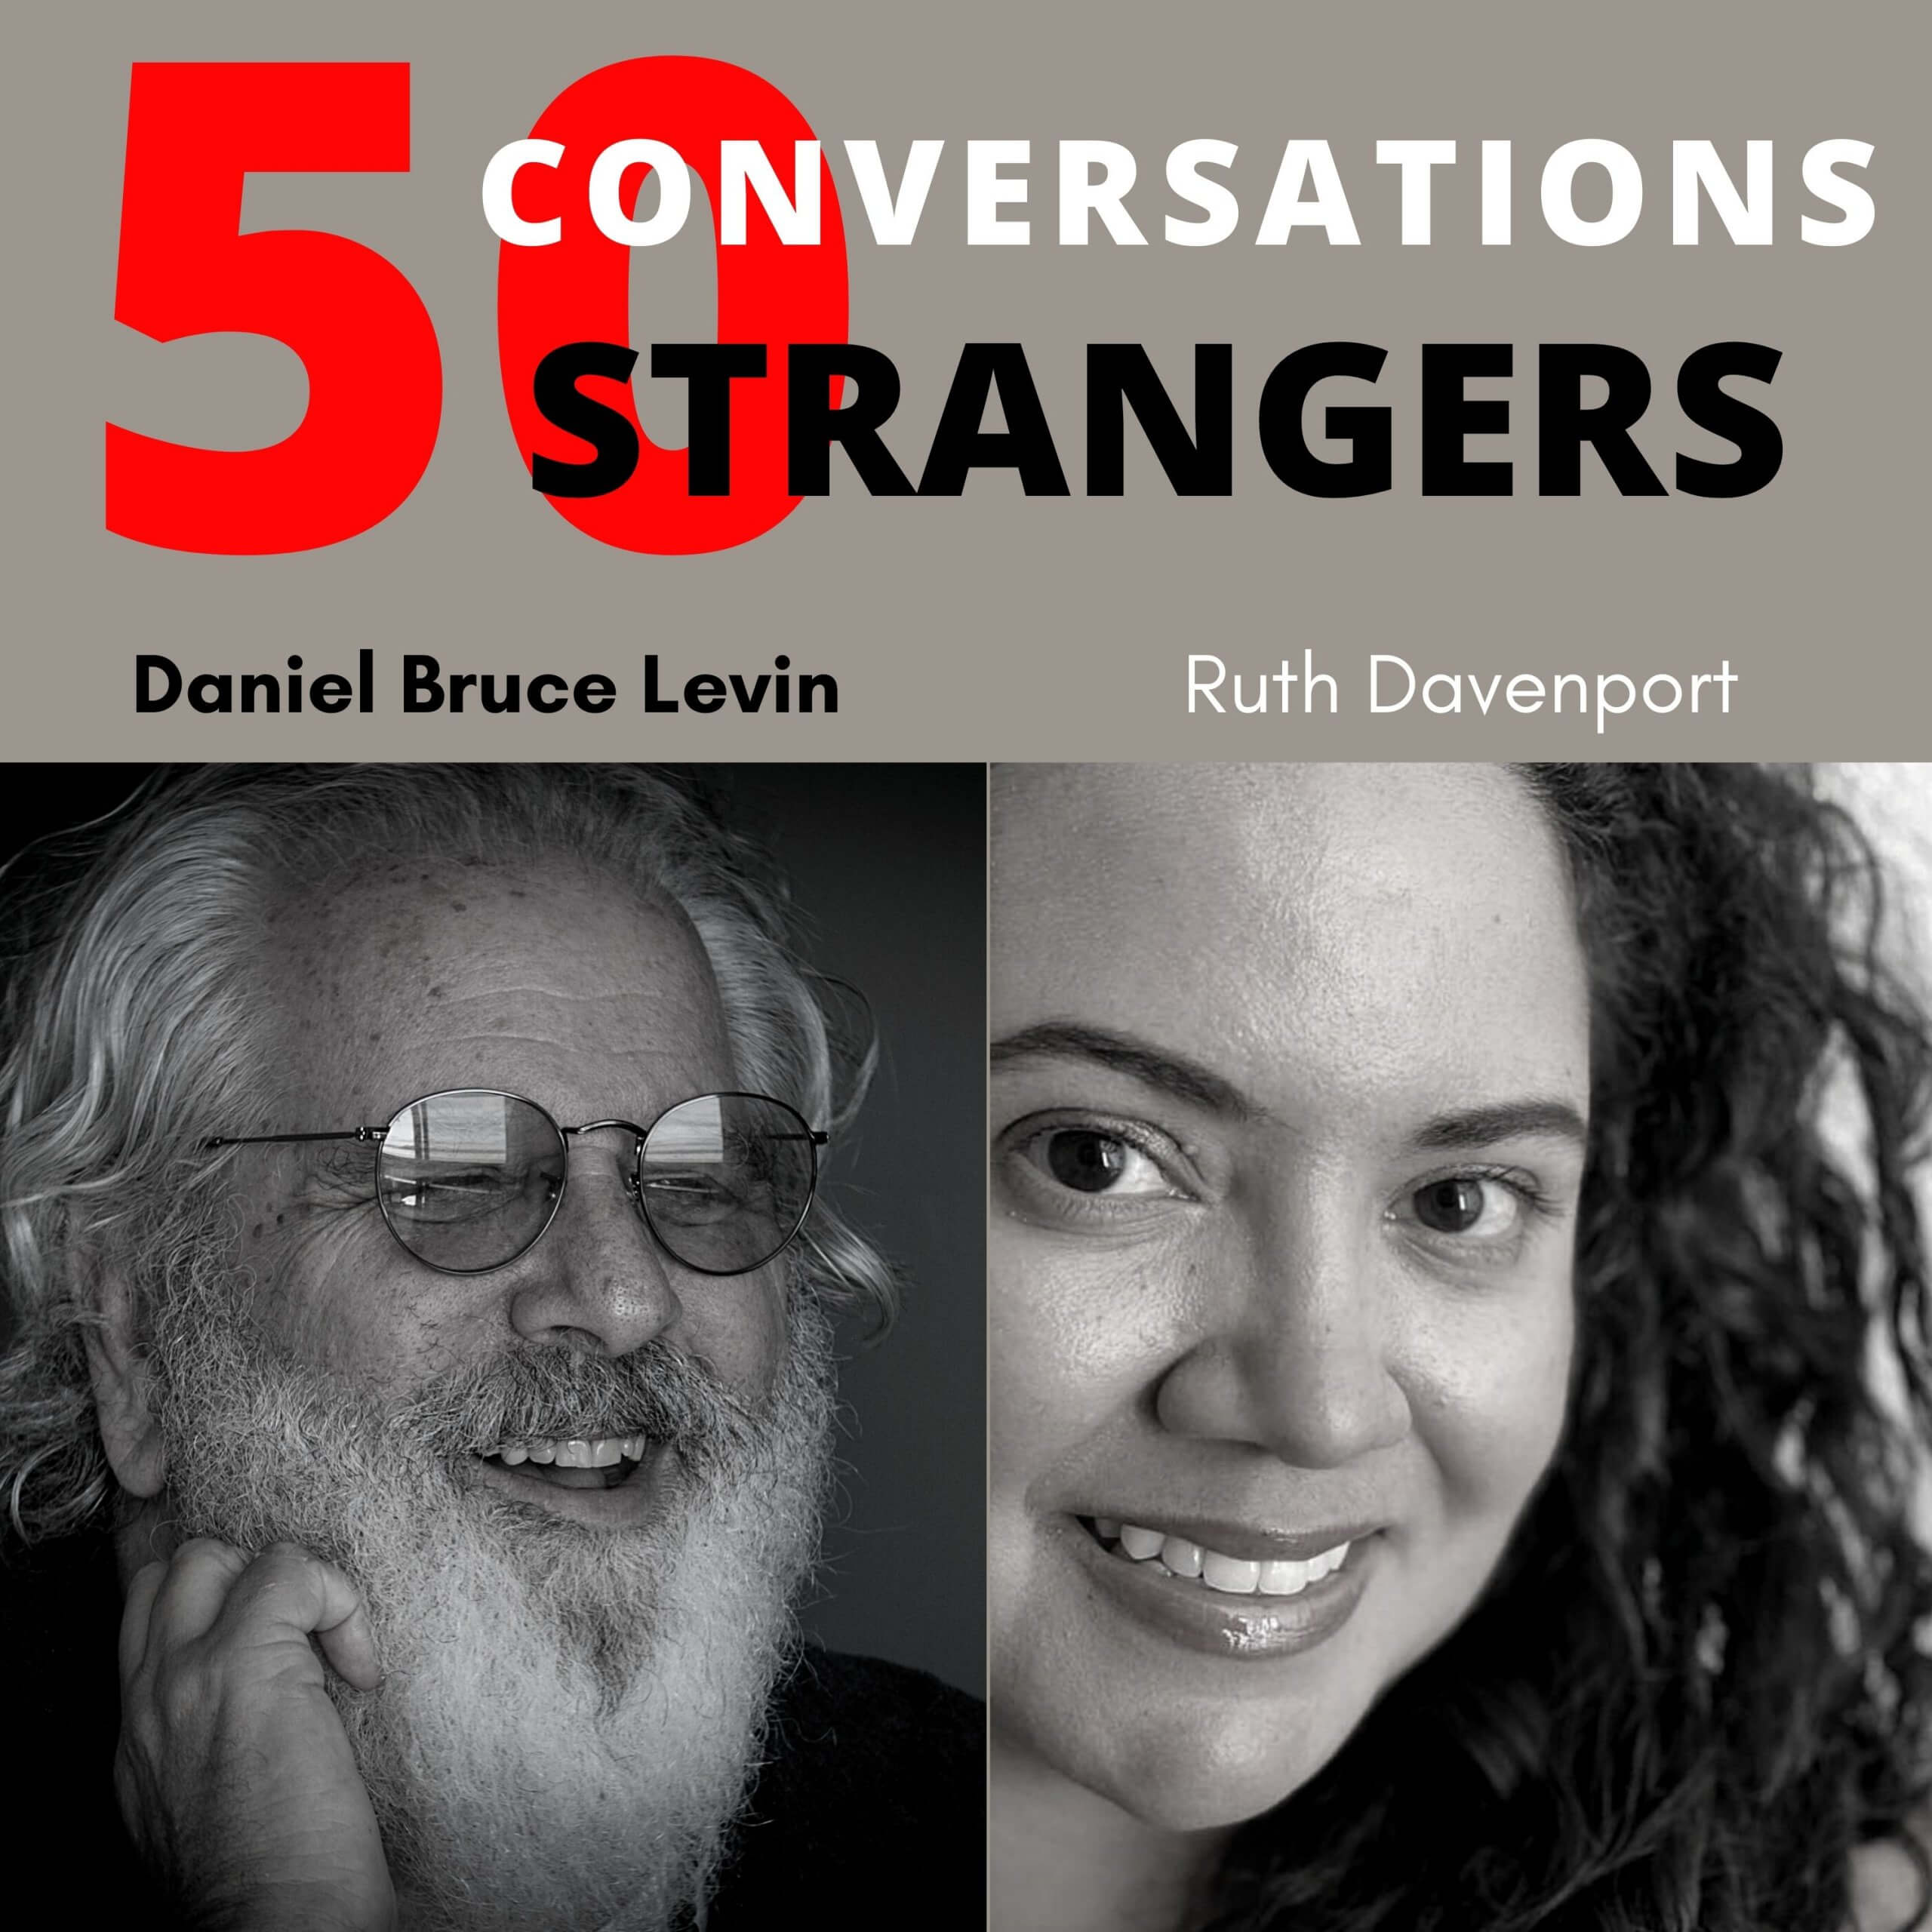 50 Conversations with 50 Strangers with Ruth Davenport